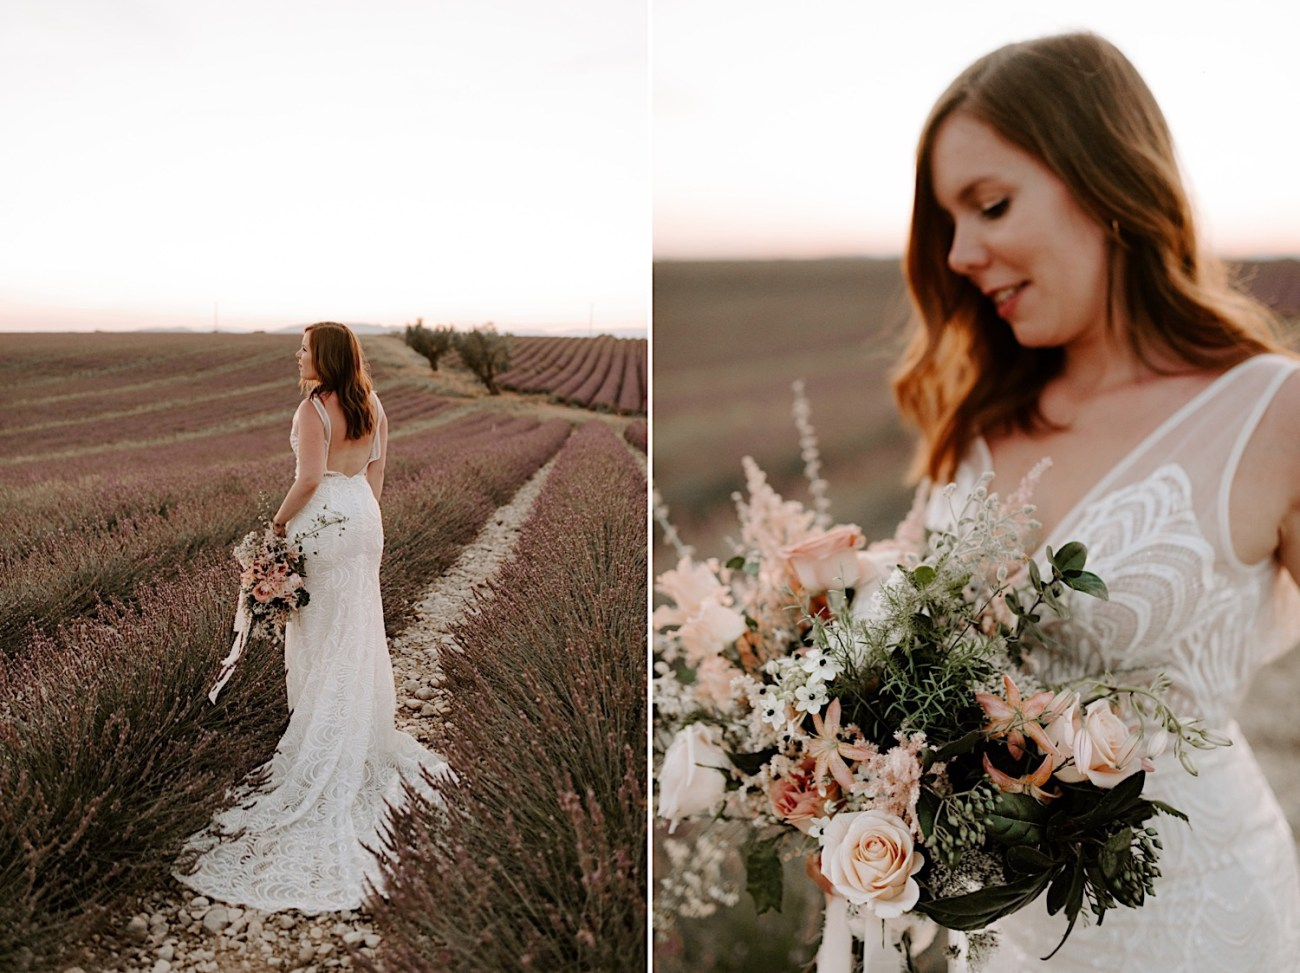 Valensole Wedding Photos Lavender Field Wedding Provence Wedding French Wedding Photographer Destination Wedding France Anais Possamai Photography 10